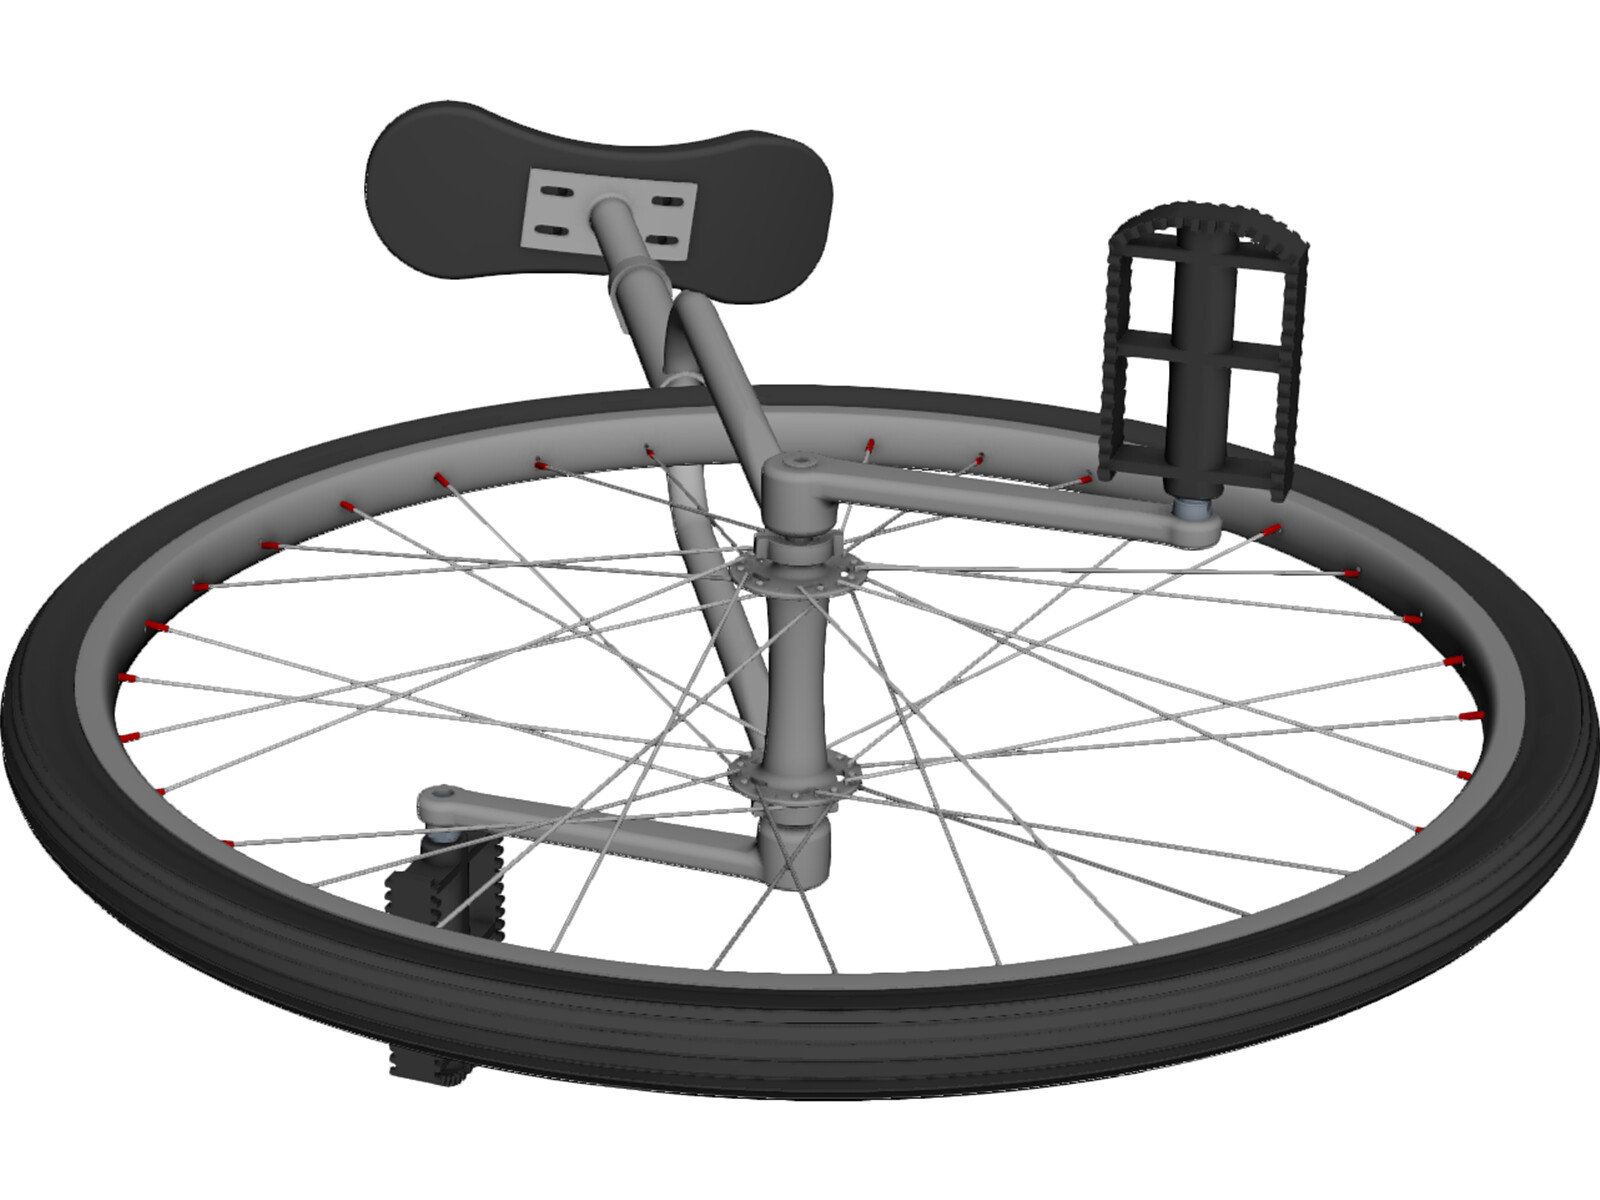 Unicycle 3D CAD Model